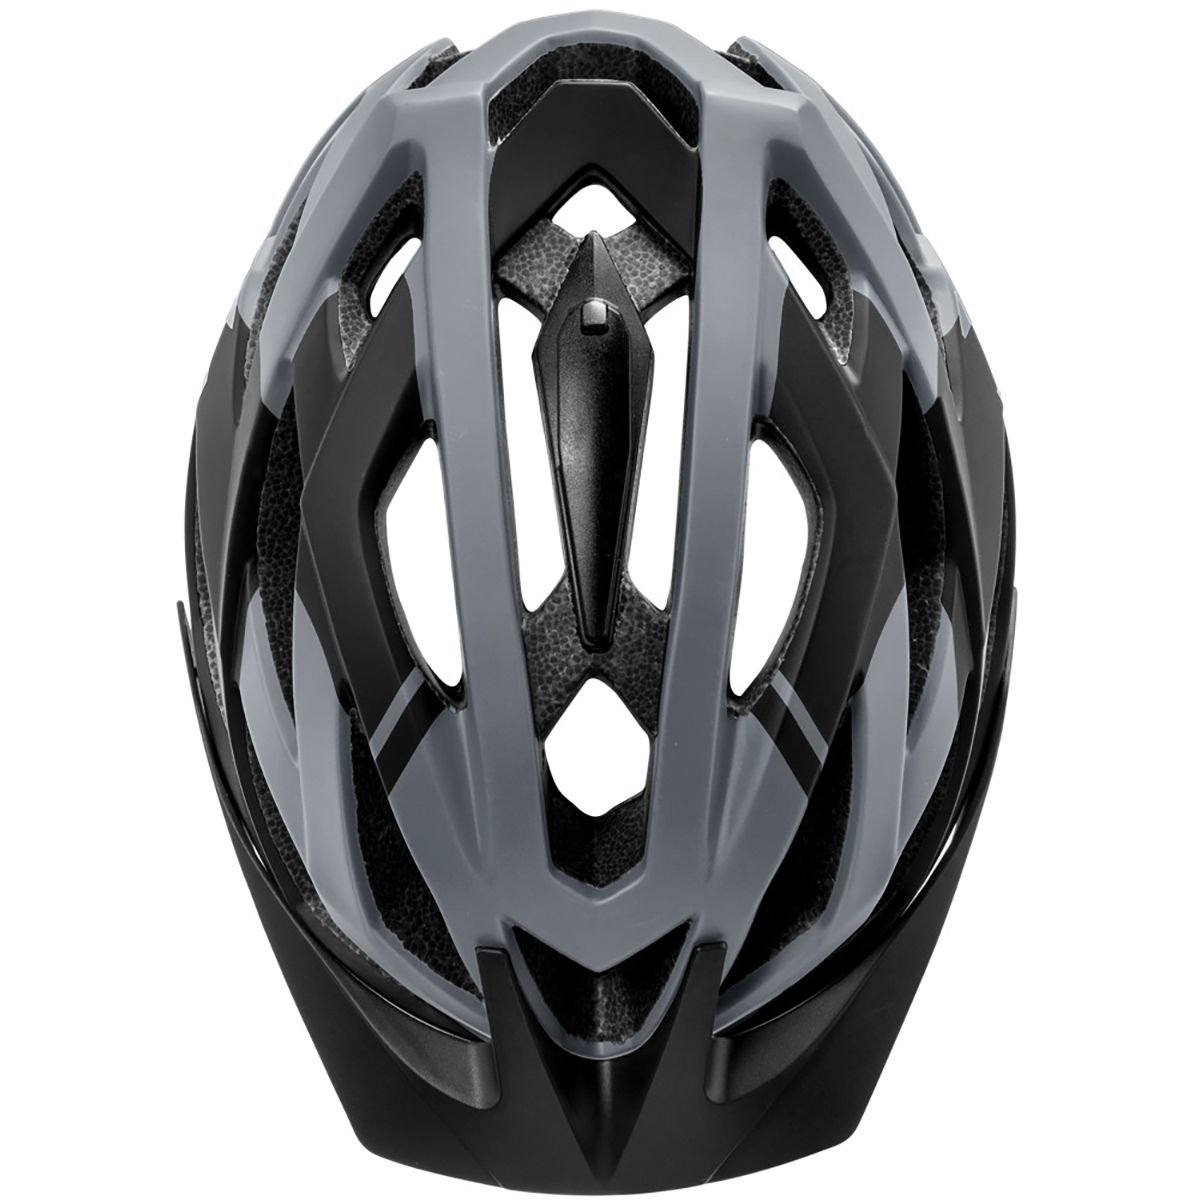 Amazon.com : Kali Protectives 2017 Lunati Enduro Bike Helmet : Sports & Outdoors